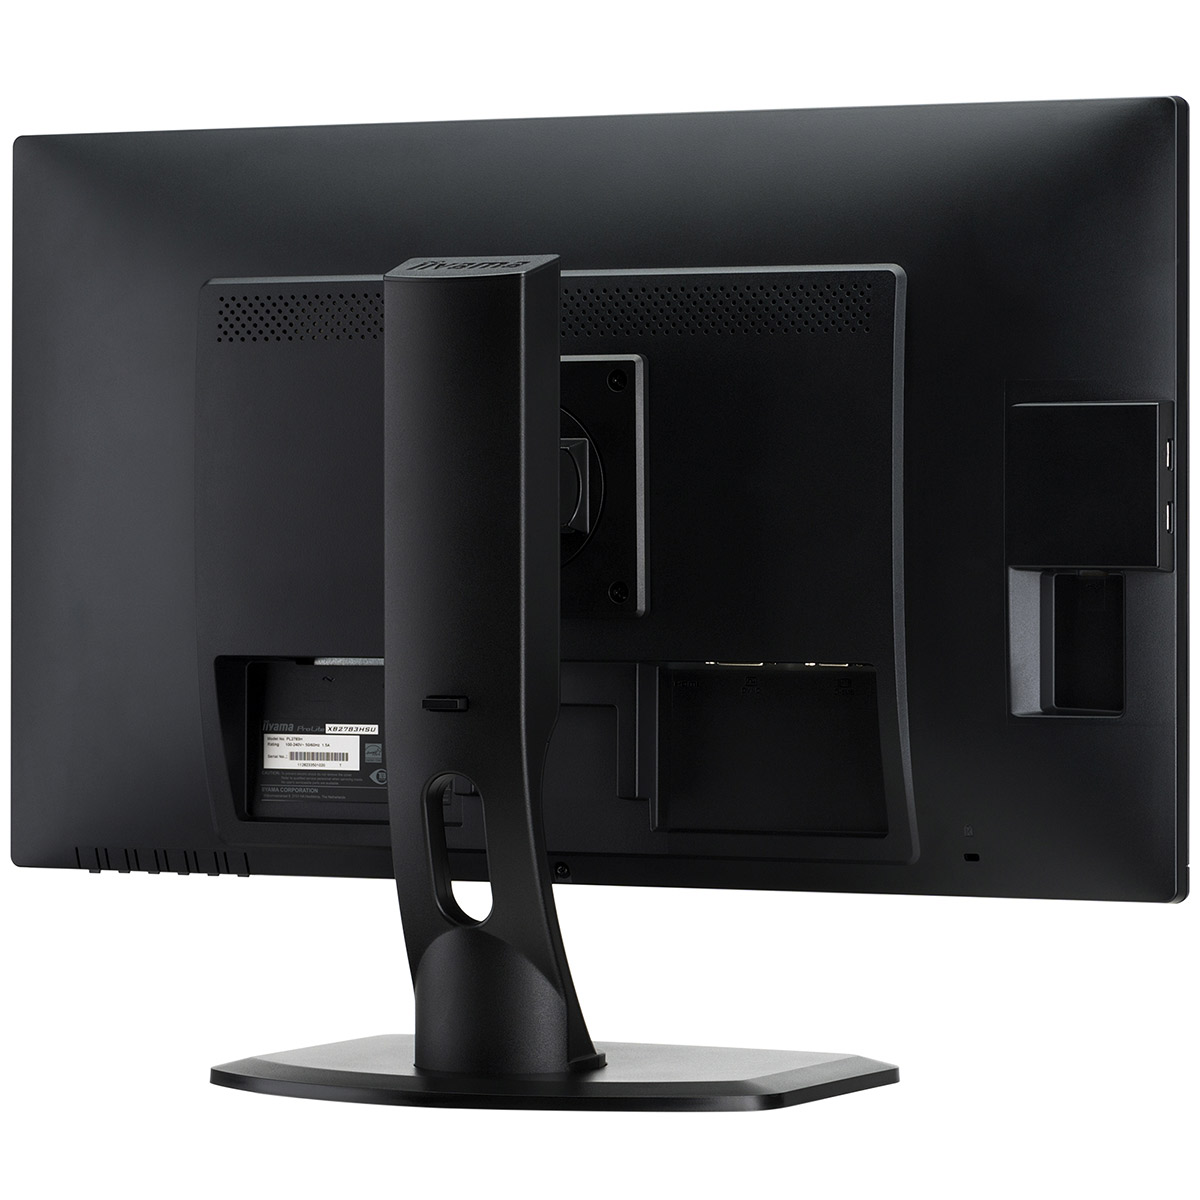 iiyama xb2783hsu b1 ecran led 27 comparer avec. Black Bedroom Furniture Sets. Home Design Ideas